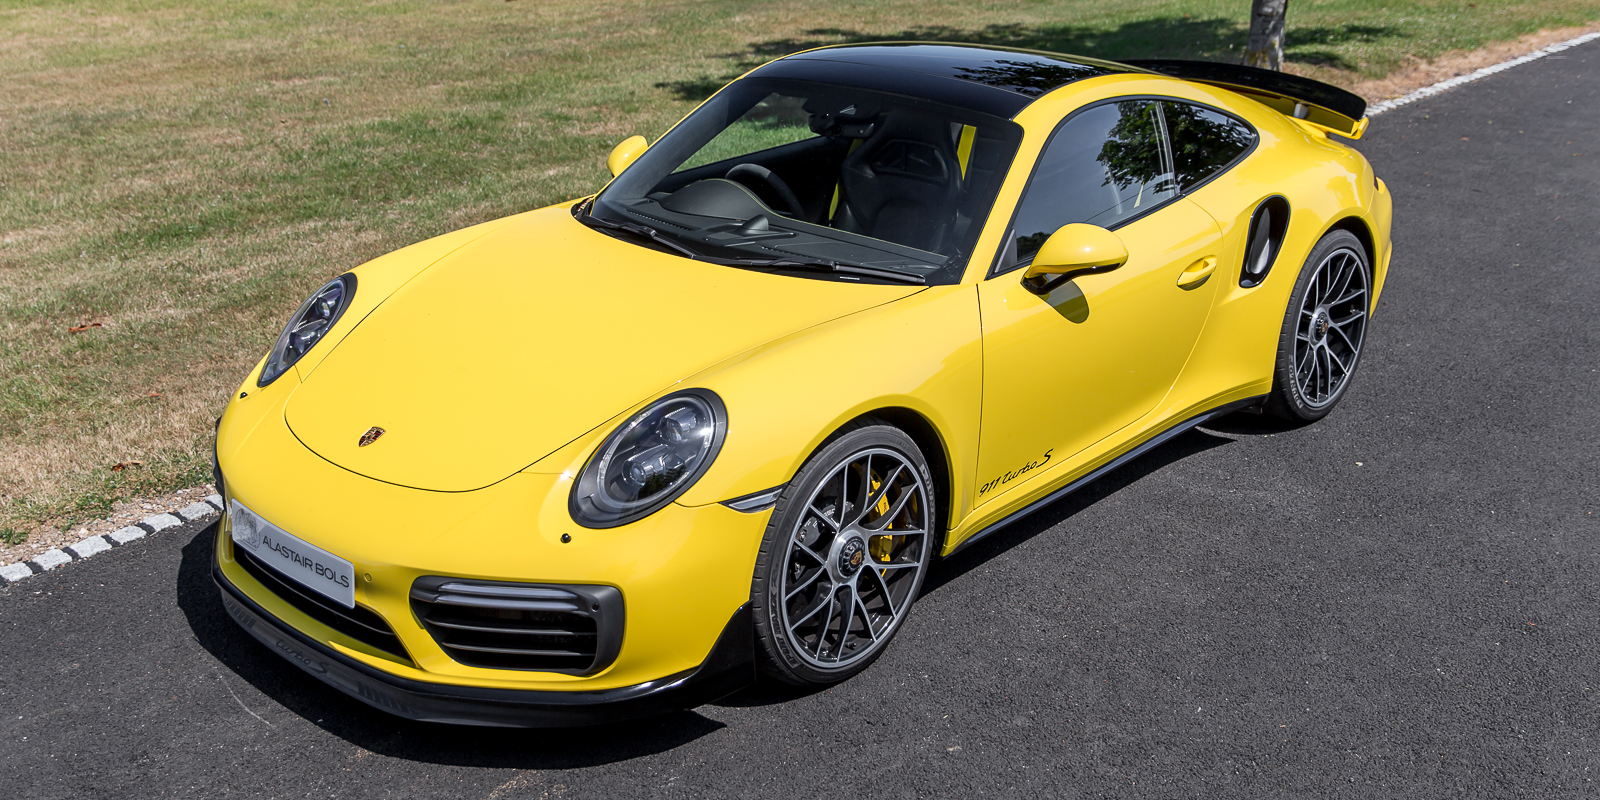 Porsche 991.2 TurboS Racing Yellow